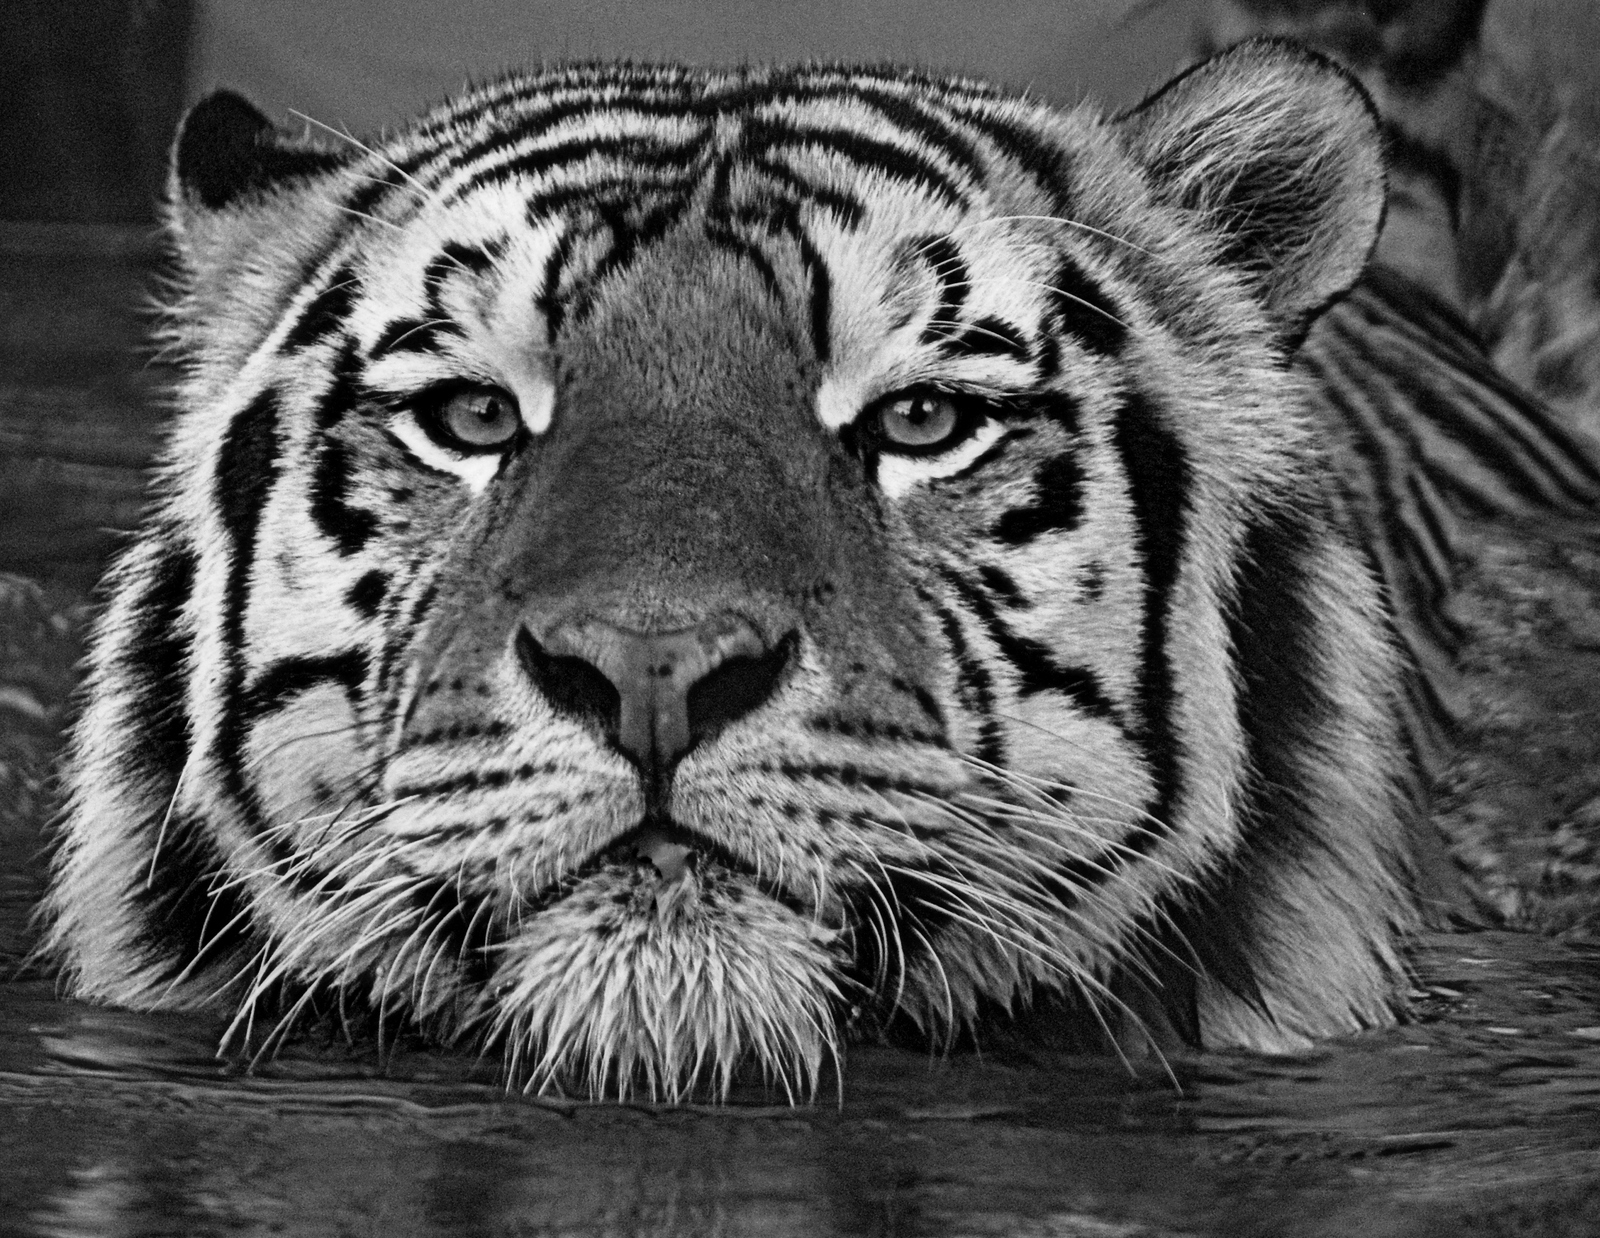 Mike The Tiger B&W by LakeMichigan, contests->b/w challenge gallery